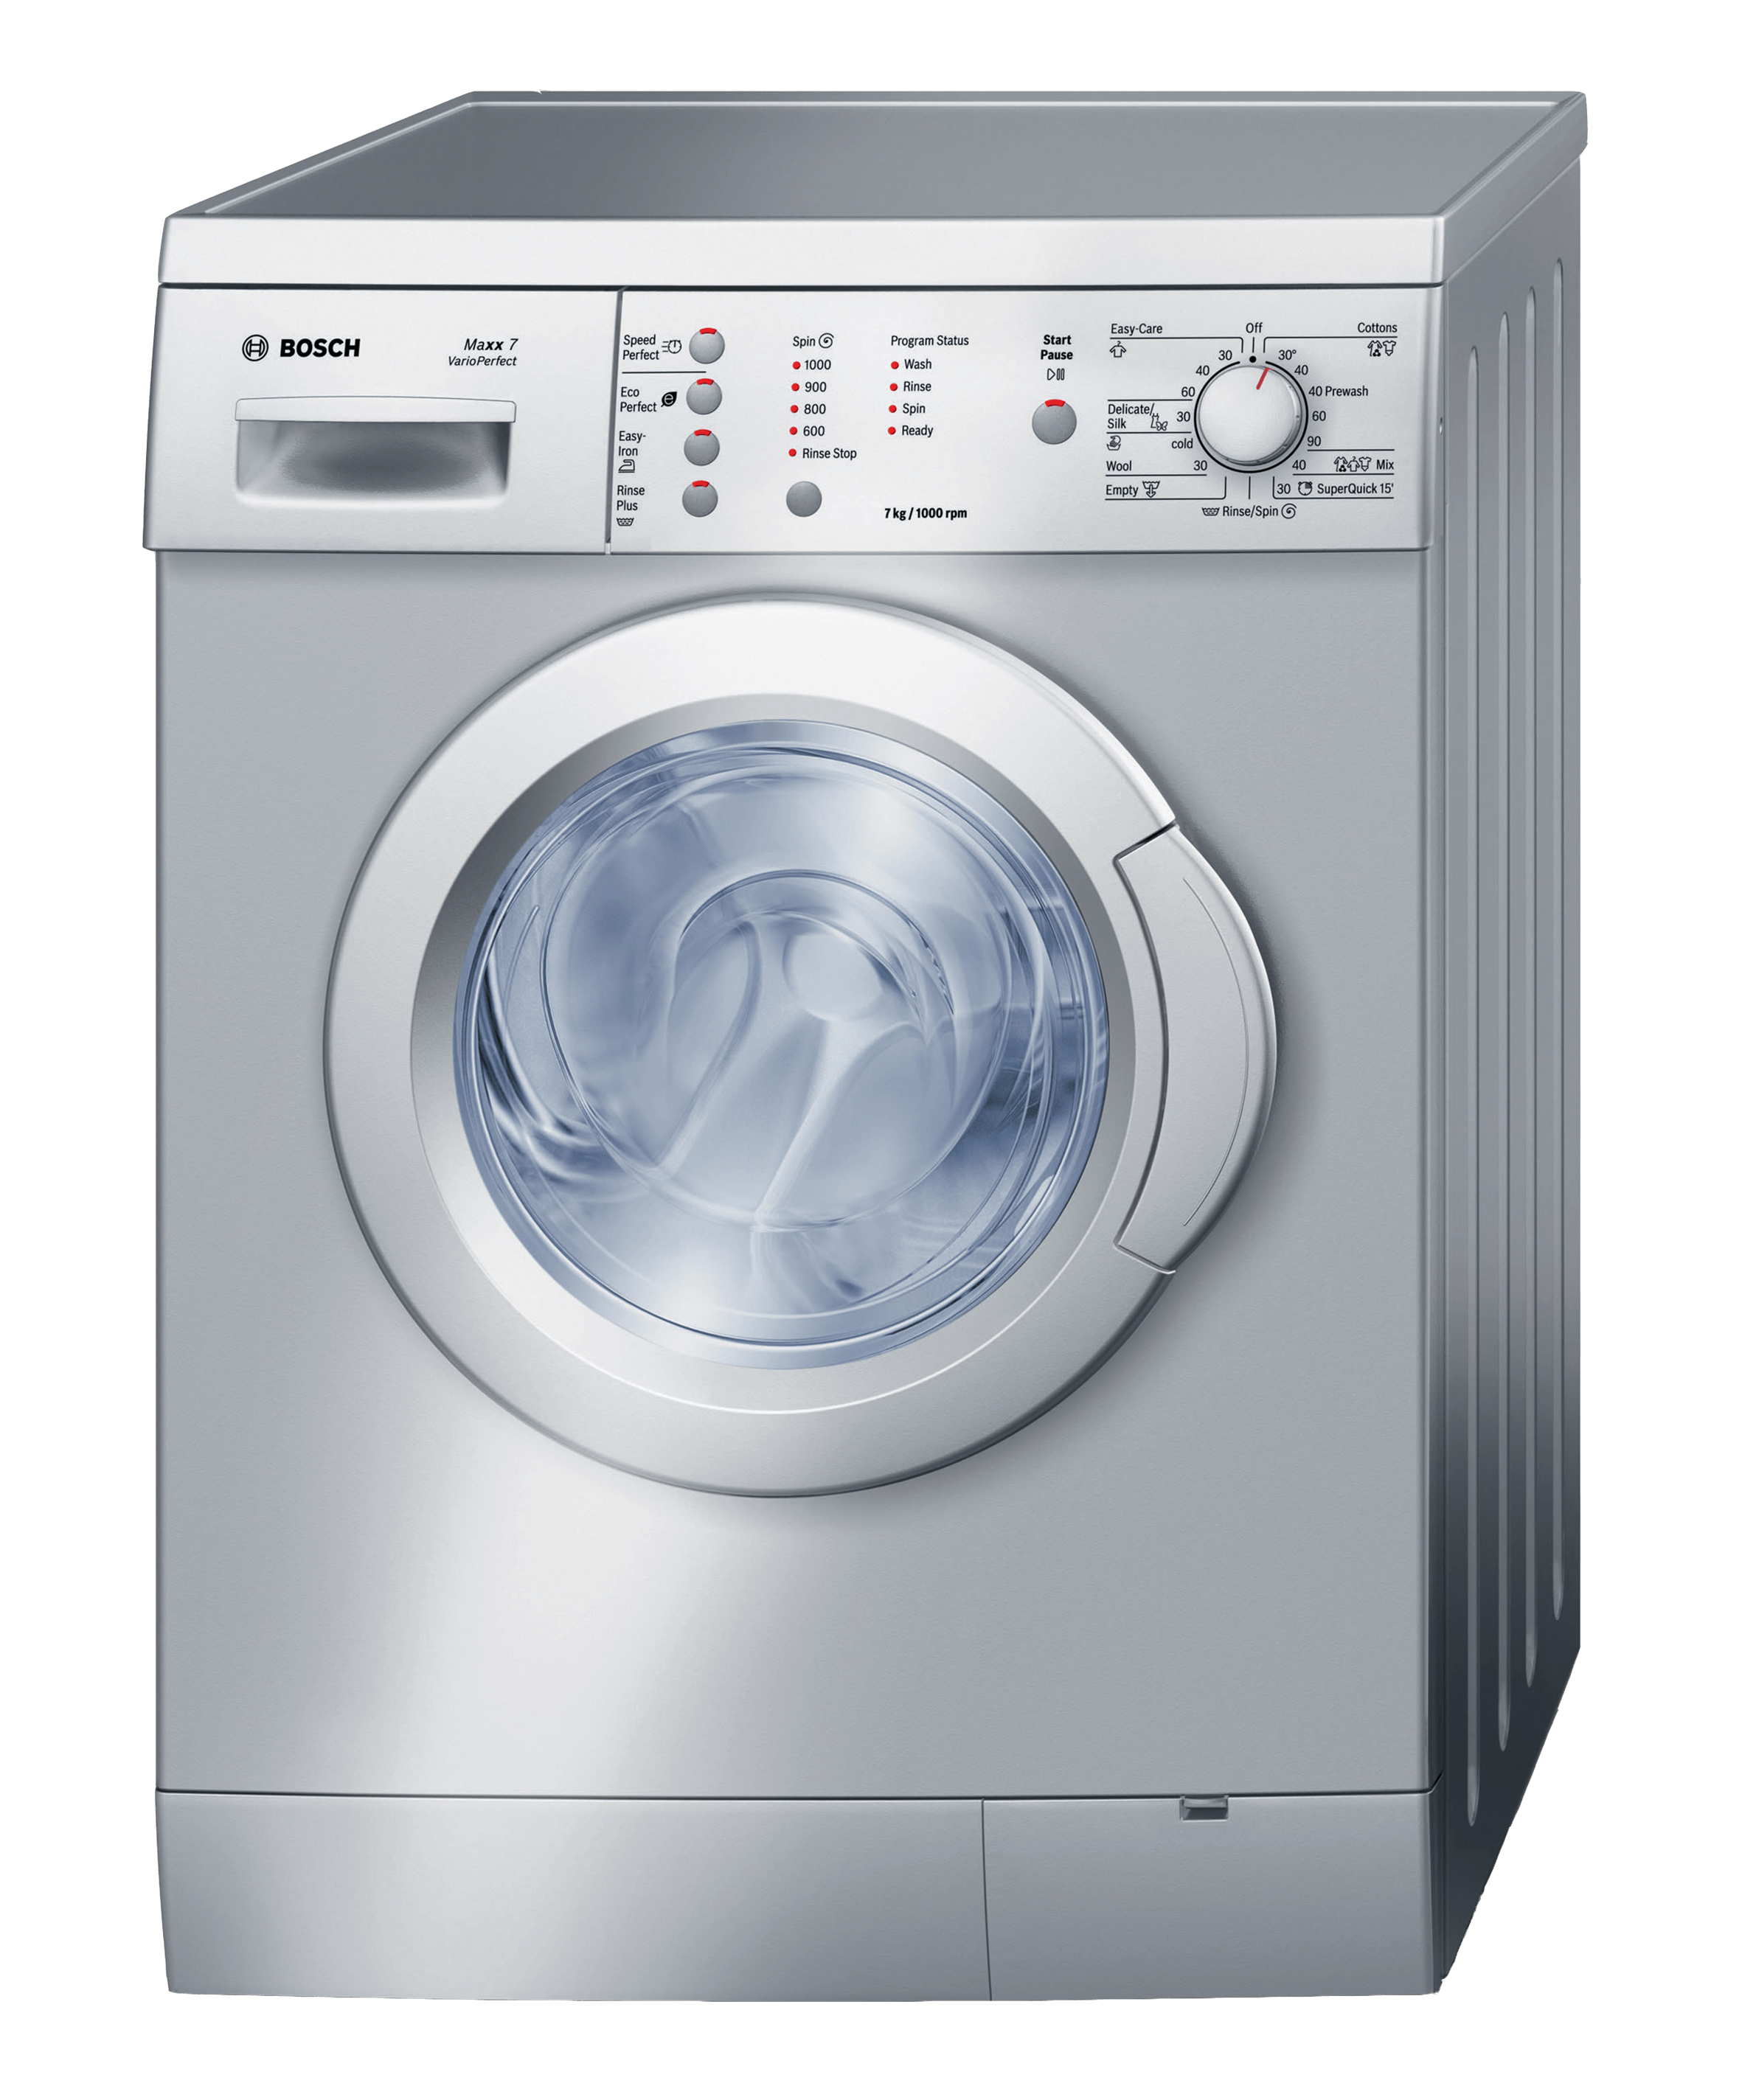 bosch front loader washing machine silver model wae201s3za newappliances. Black Bedroom Furniture Sets. Home Design Ideas